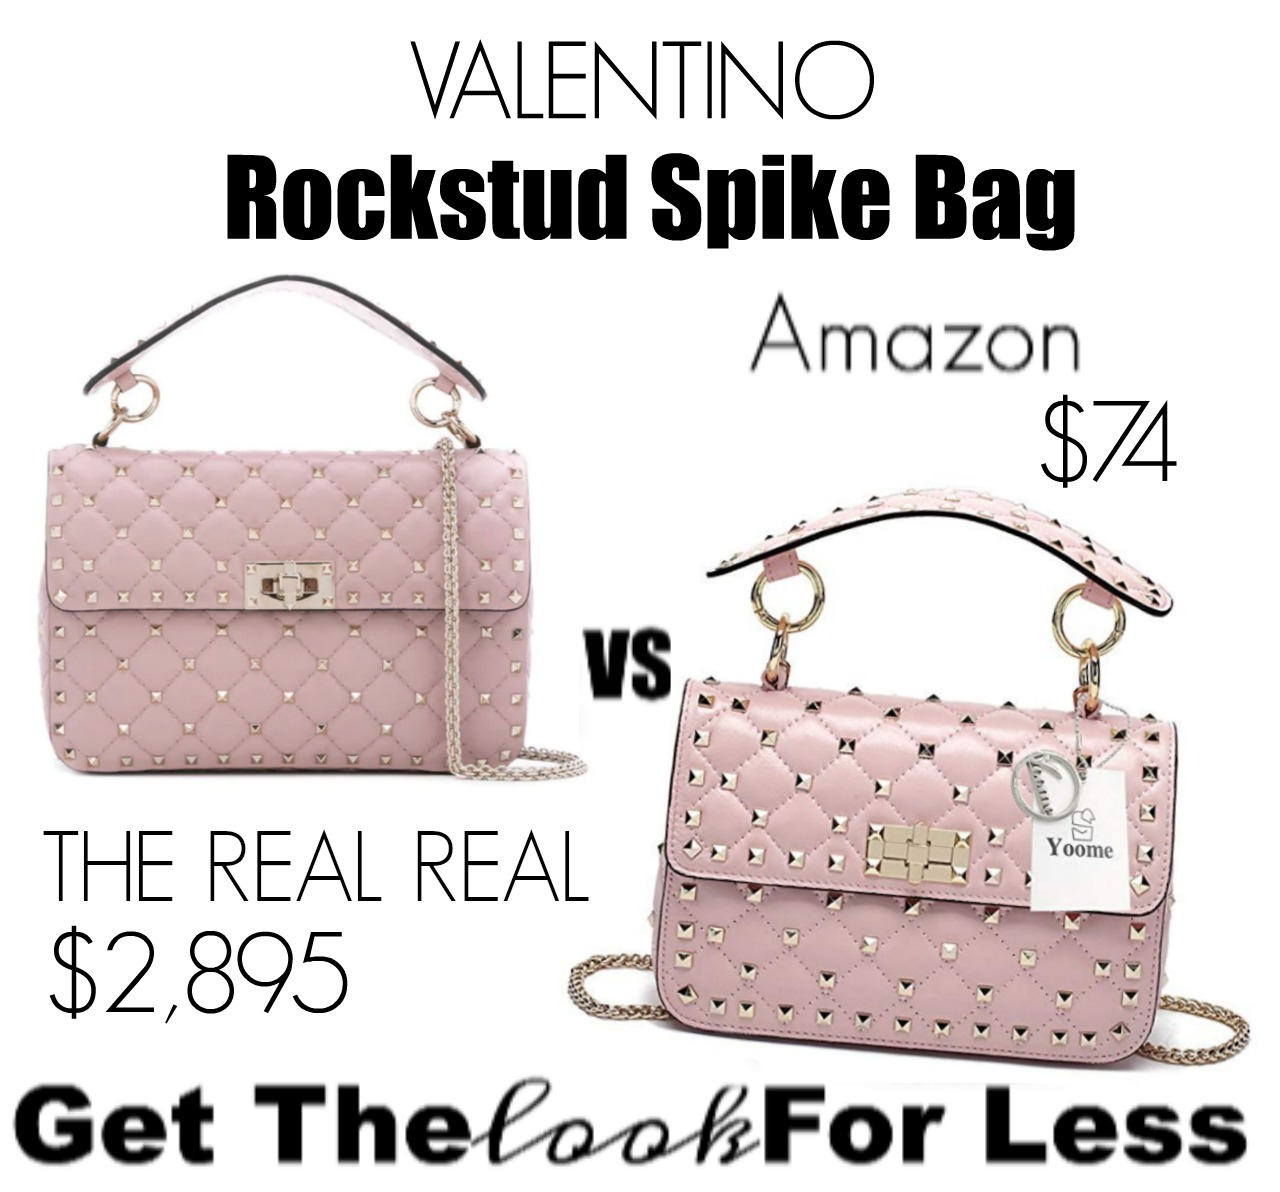 GET THE LOOK FOR LESS: Valentino Rockstud Spike Bag